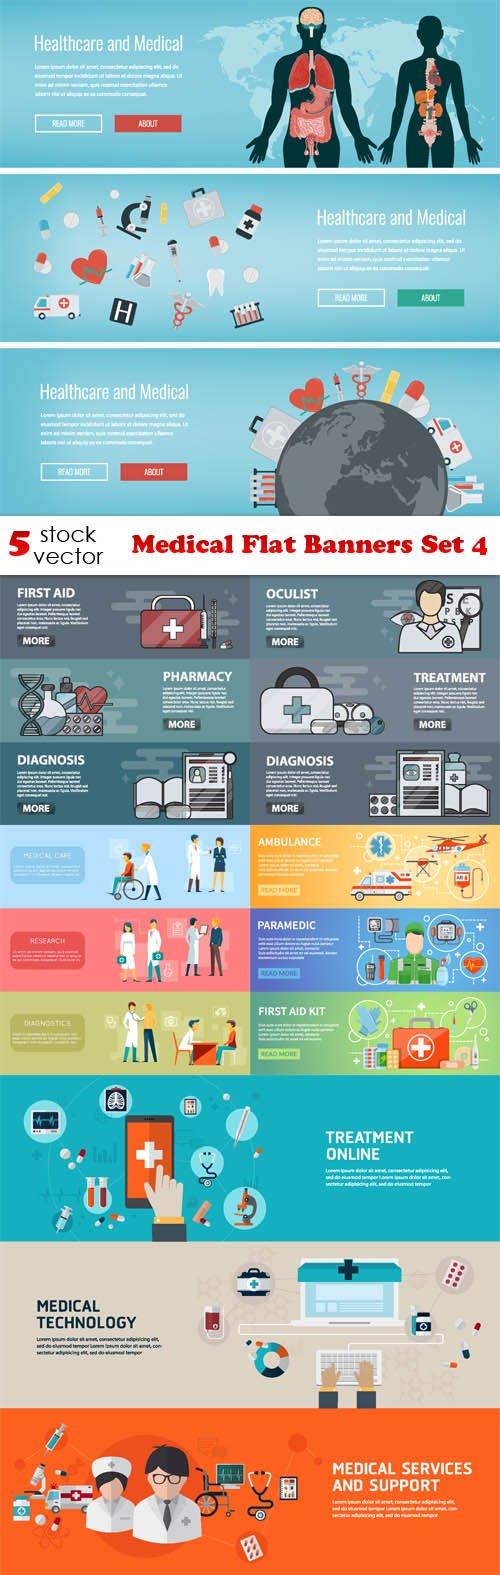 Vectors - Medical Flat Banners Set 4